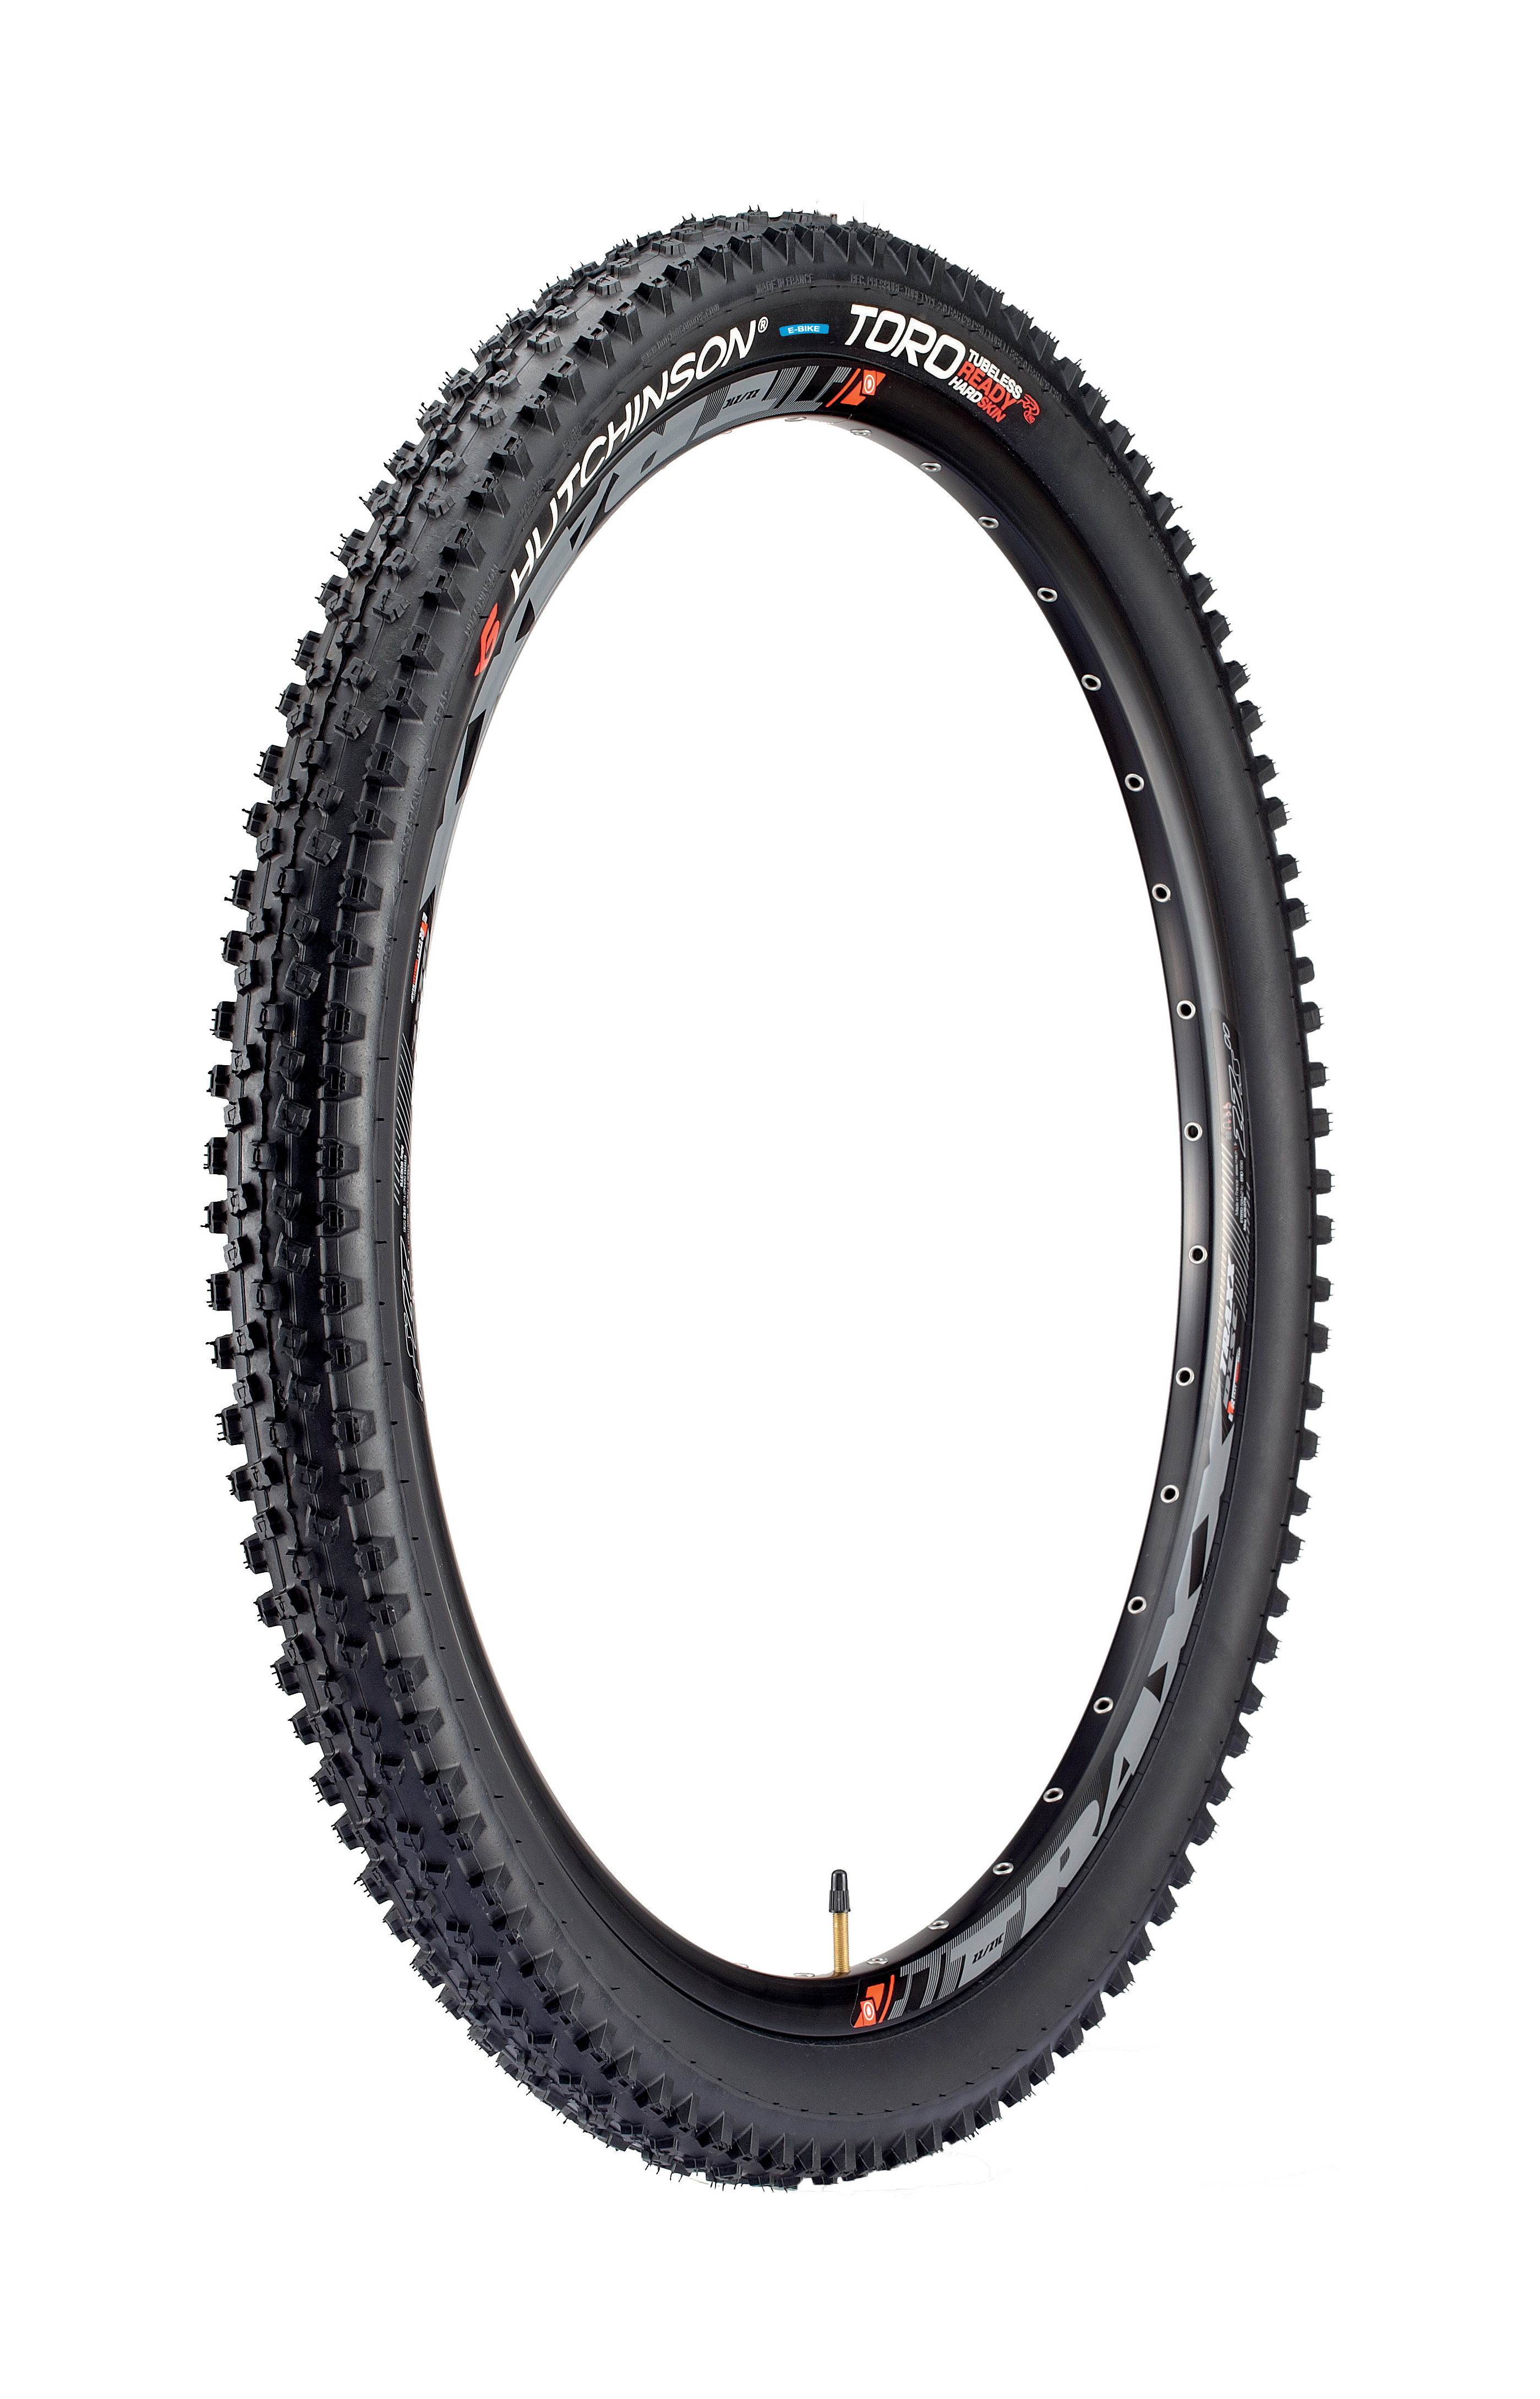 Mountain-Bike-Tyre-Hutchinson-Toro-Mtb-Tire-27-5-X-2-25-Tt